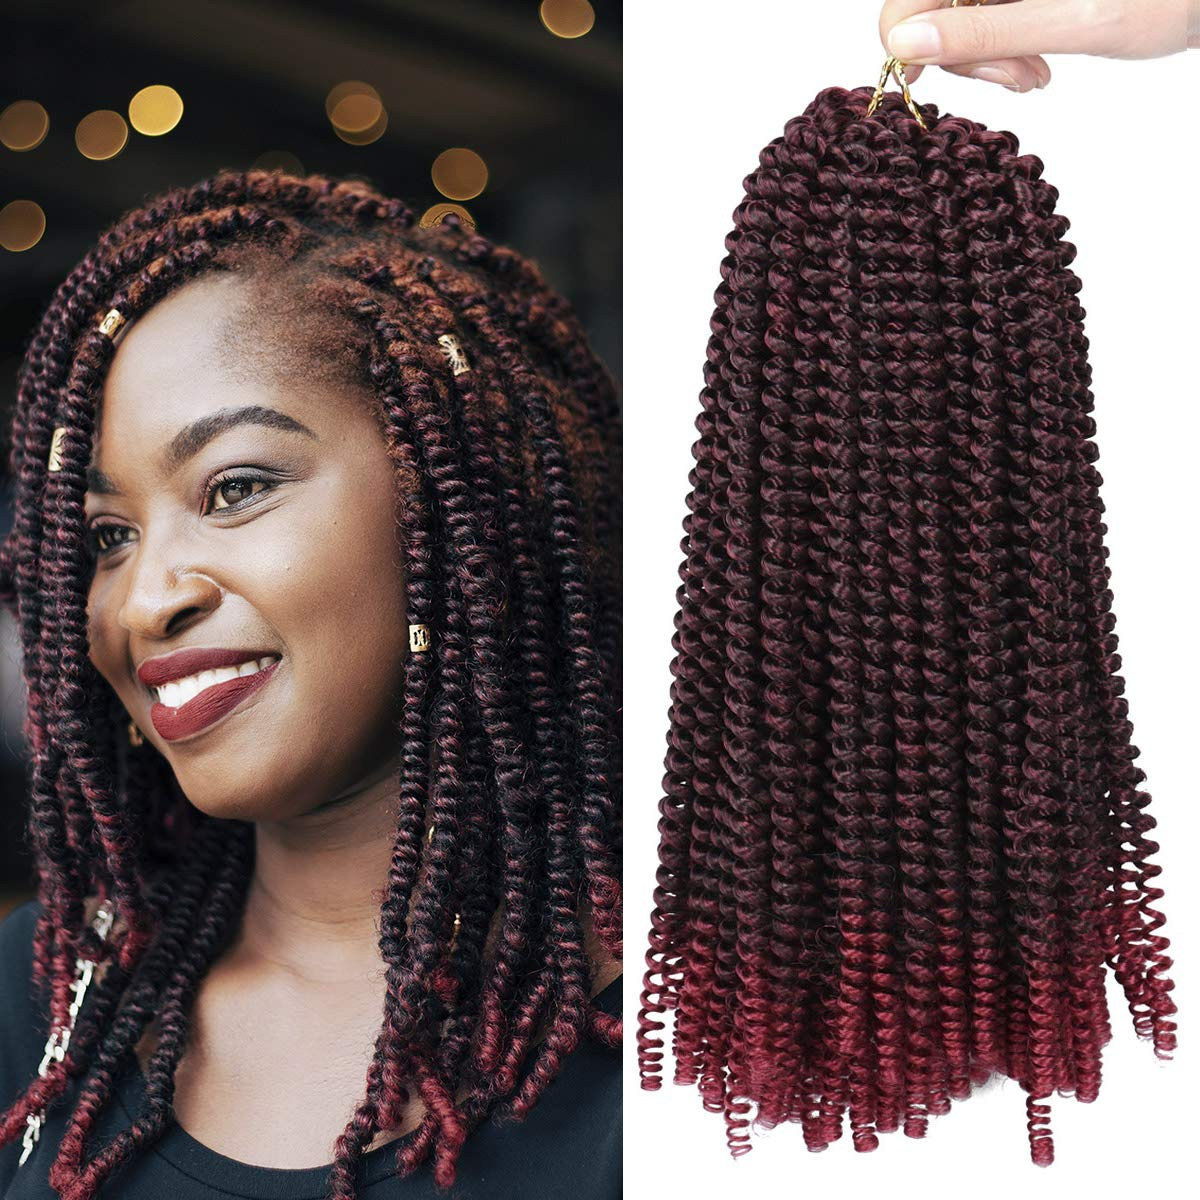 3 Packs Spring Twist Crochet Hair 12 Inch Ombre Colors Crochet Braids Fluffy Synthetic Braiding Hair Extensions Low Temperature Fiber(T1B/Burgundy#)